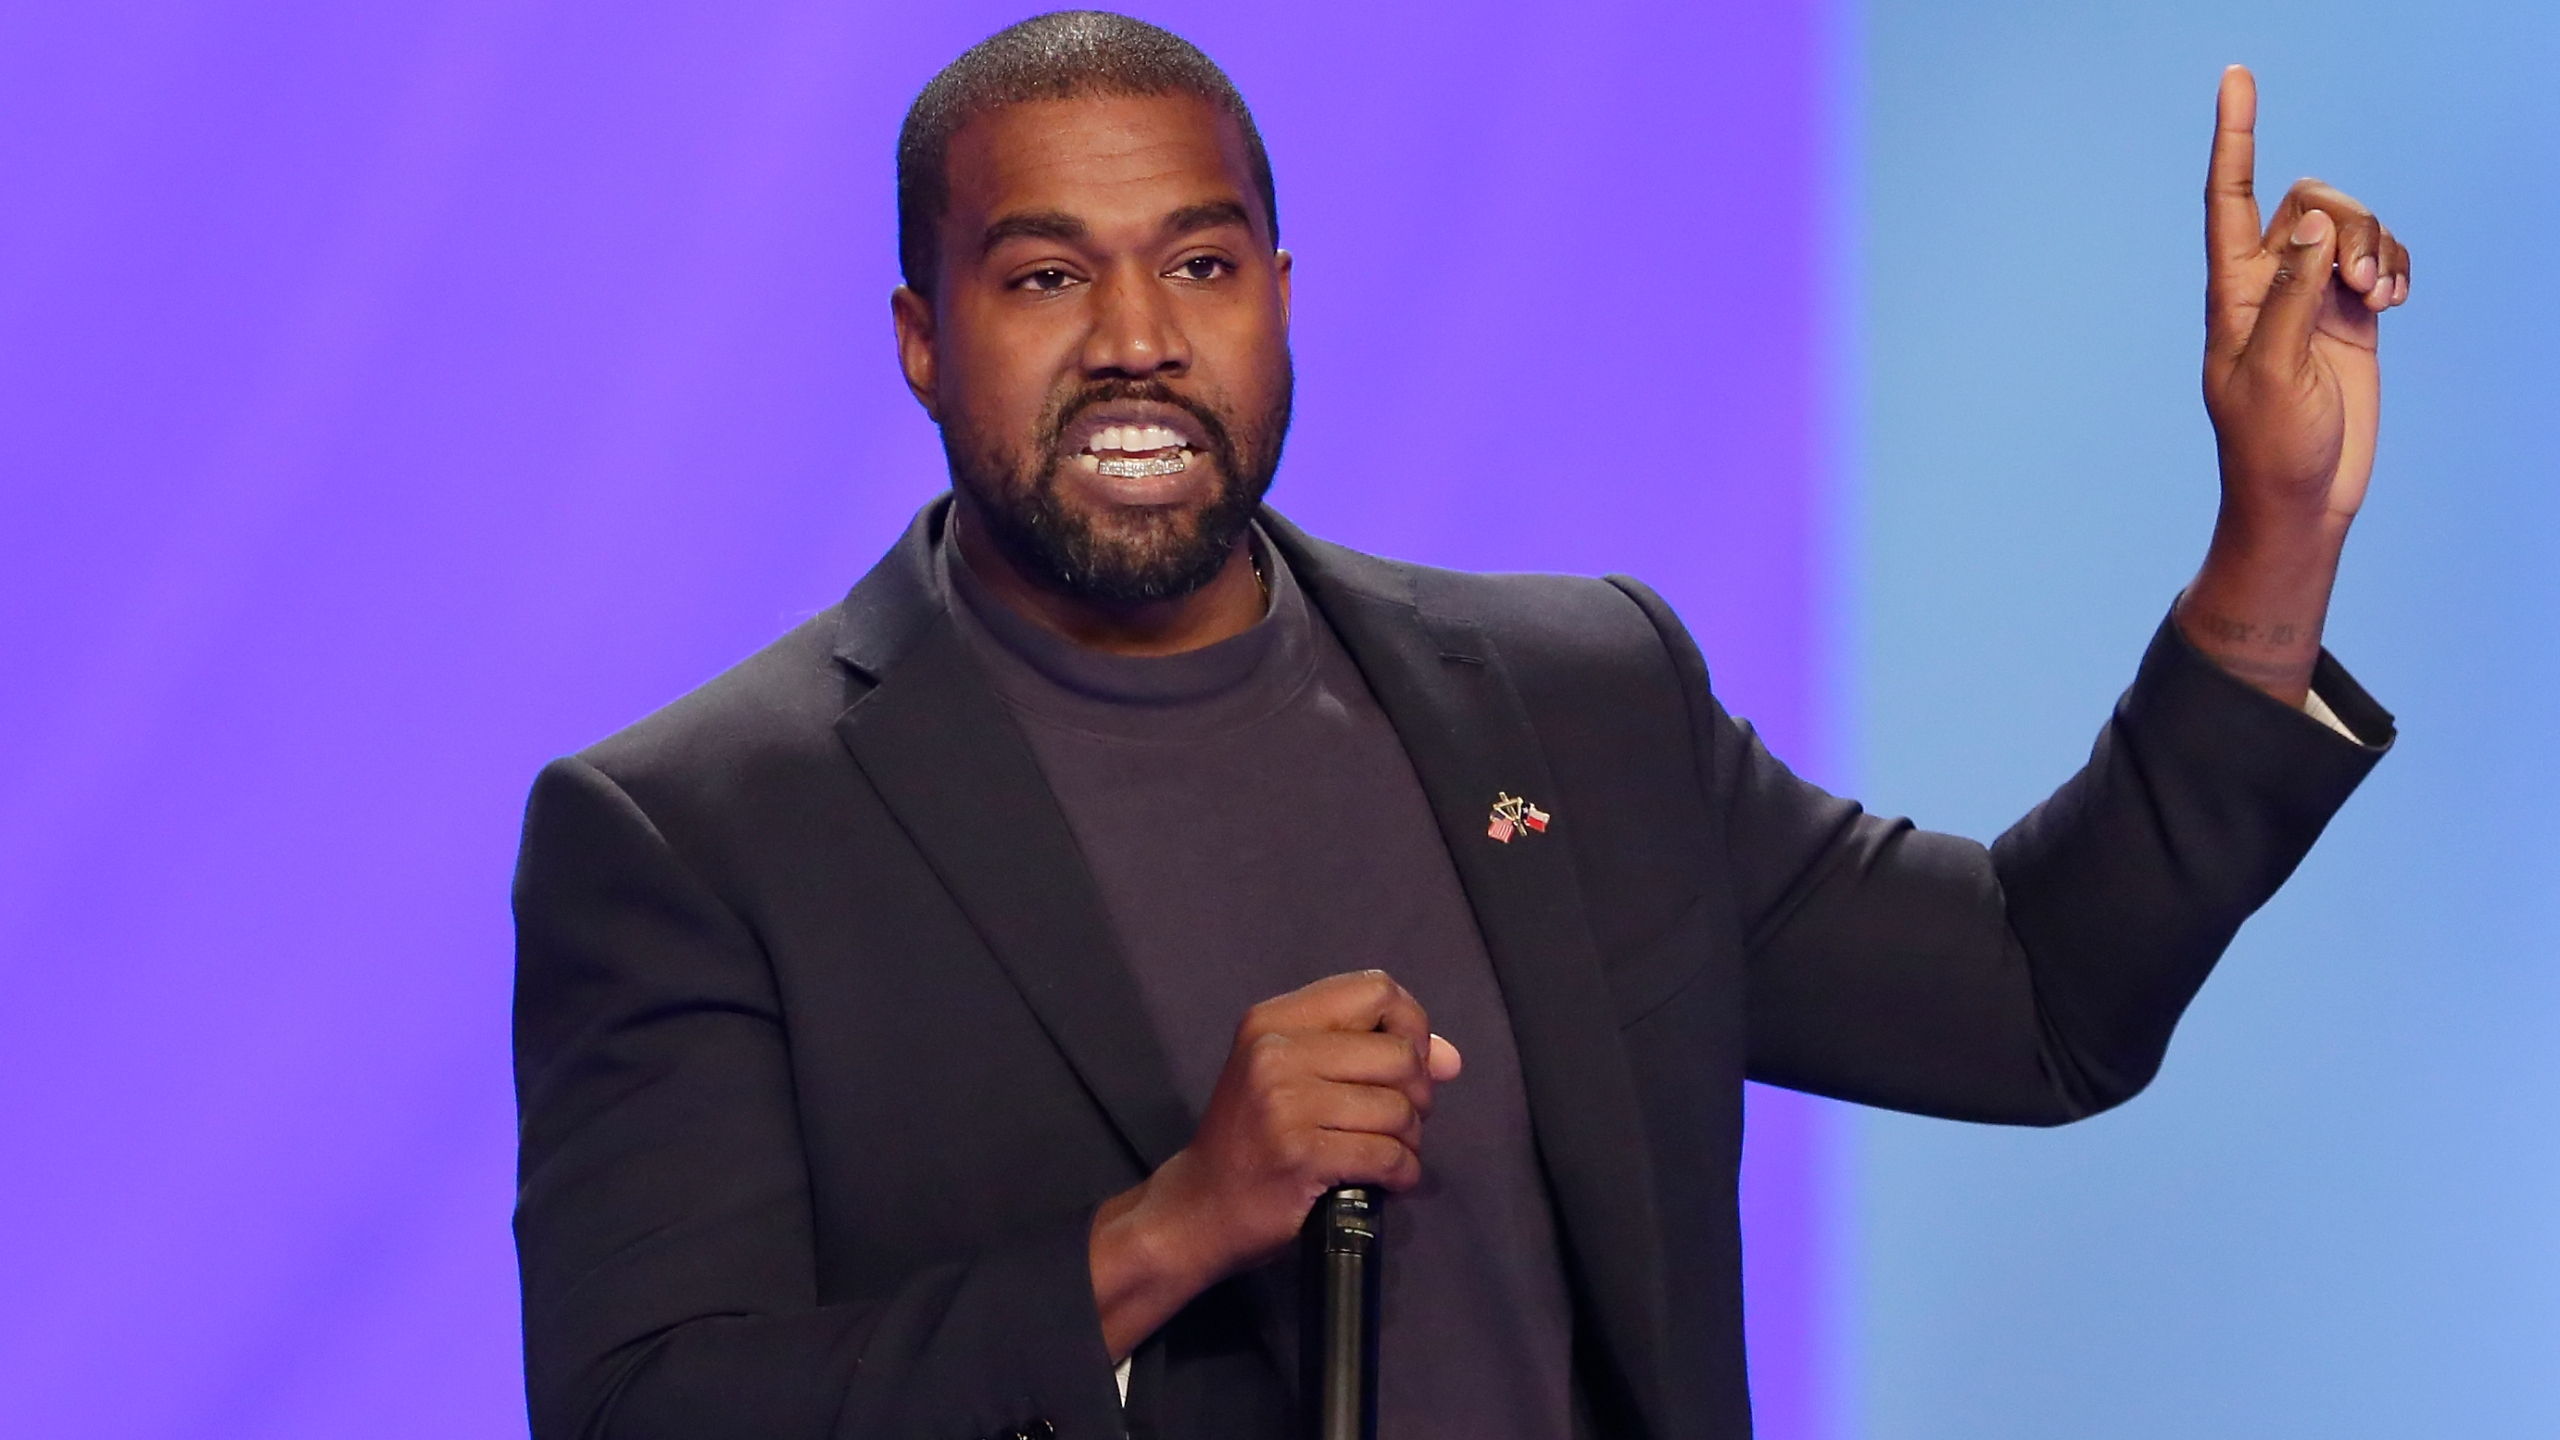 FILE - In this Sunday, Nov. 17, 2019, file photo, Kanye West answers questions during a service at Lakewood Church, in Houston. (AP Photo/Michael Wyke, File)